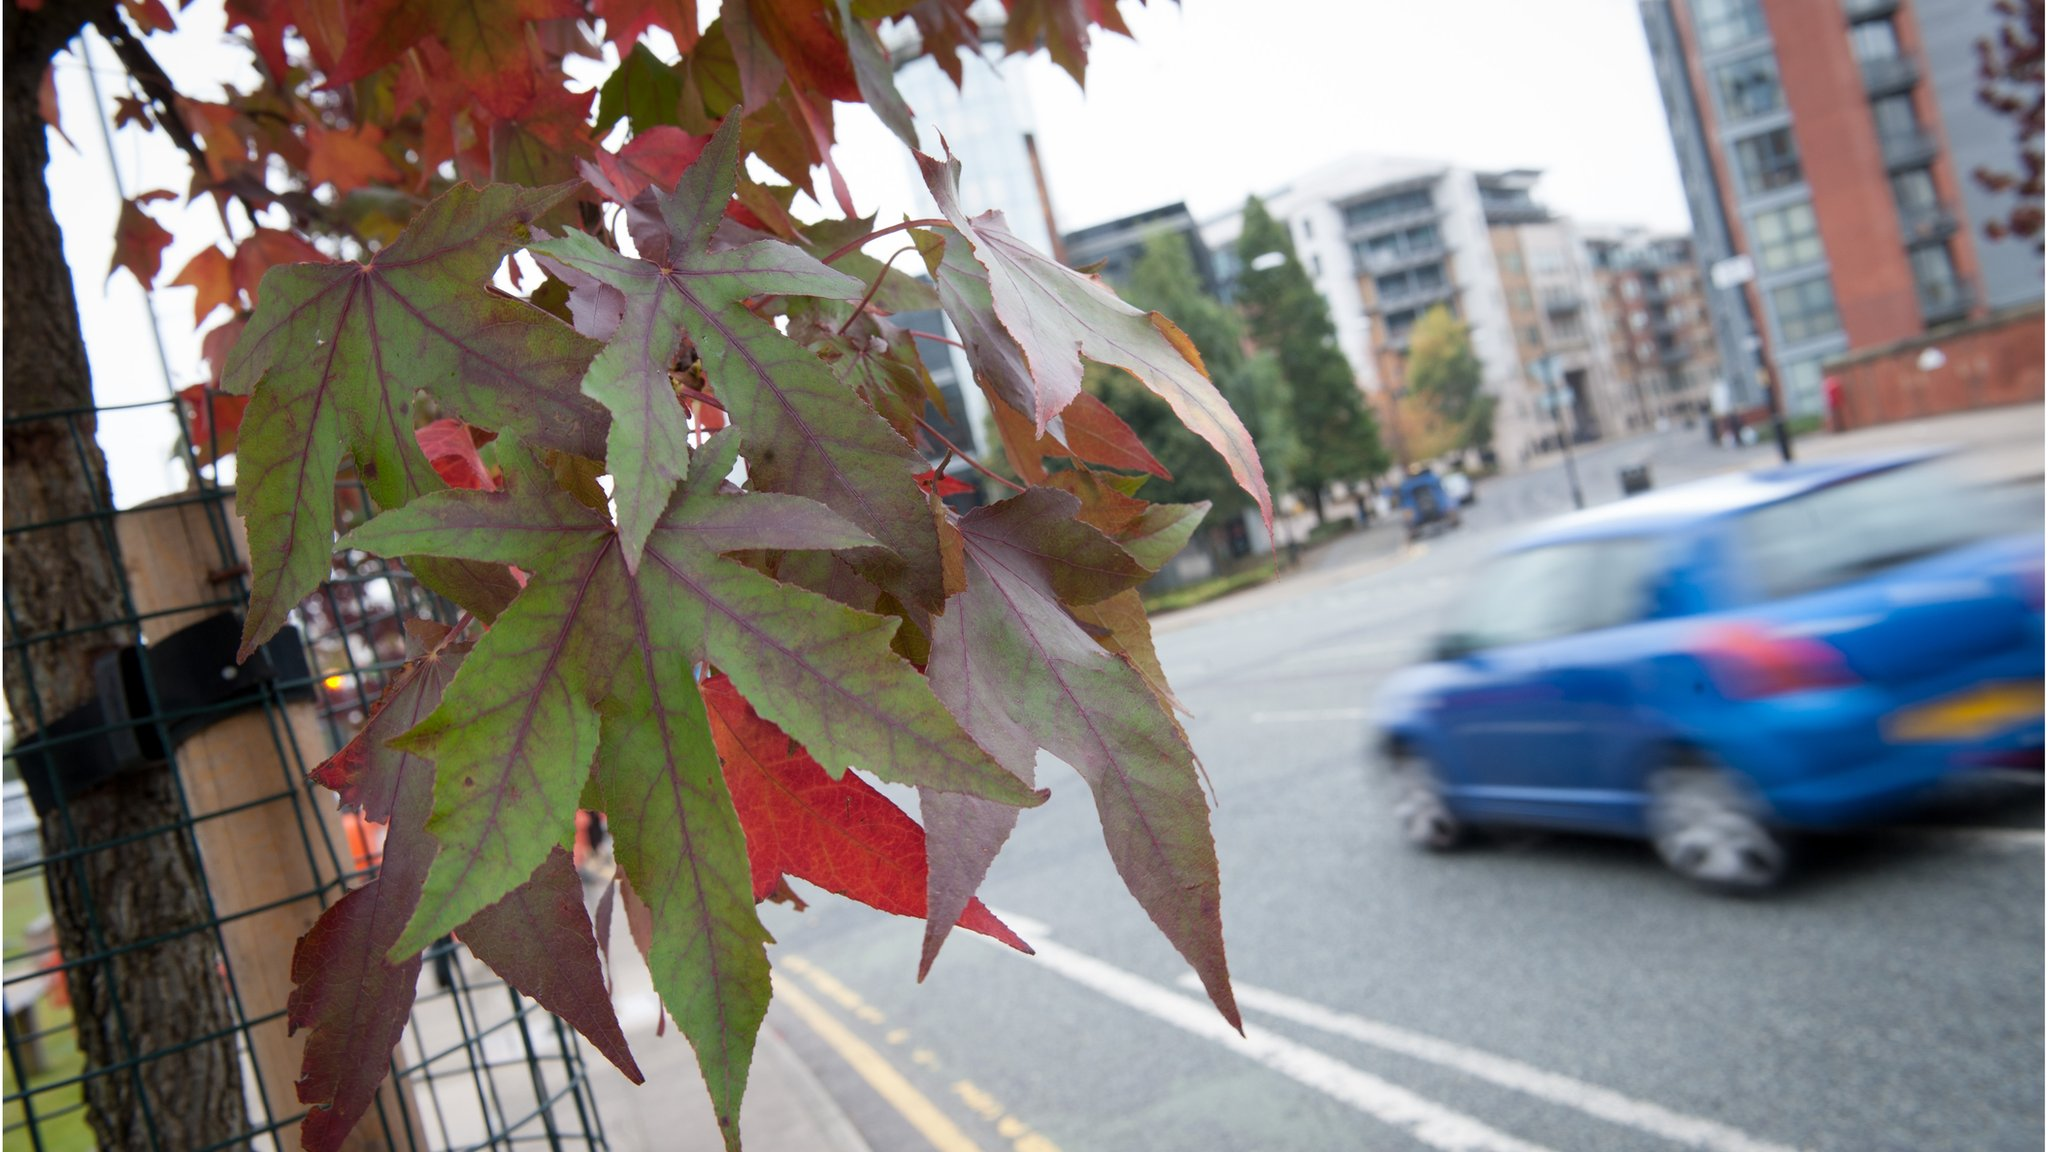 Project aims to grow a 'city of trees'